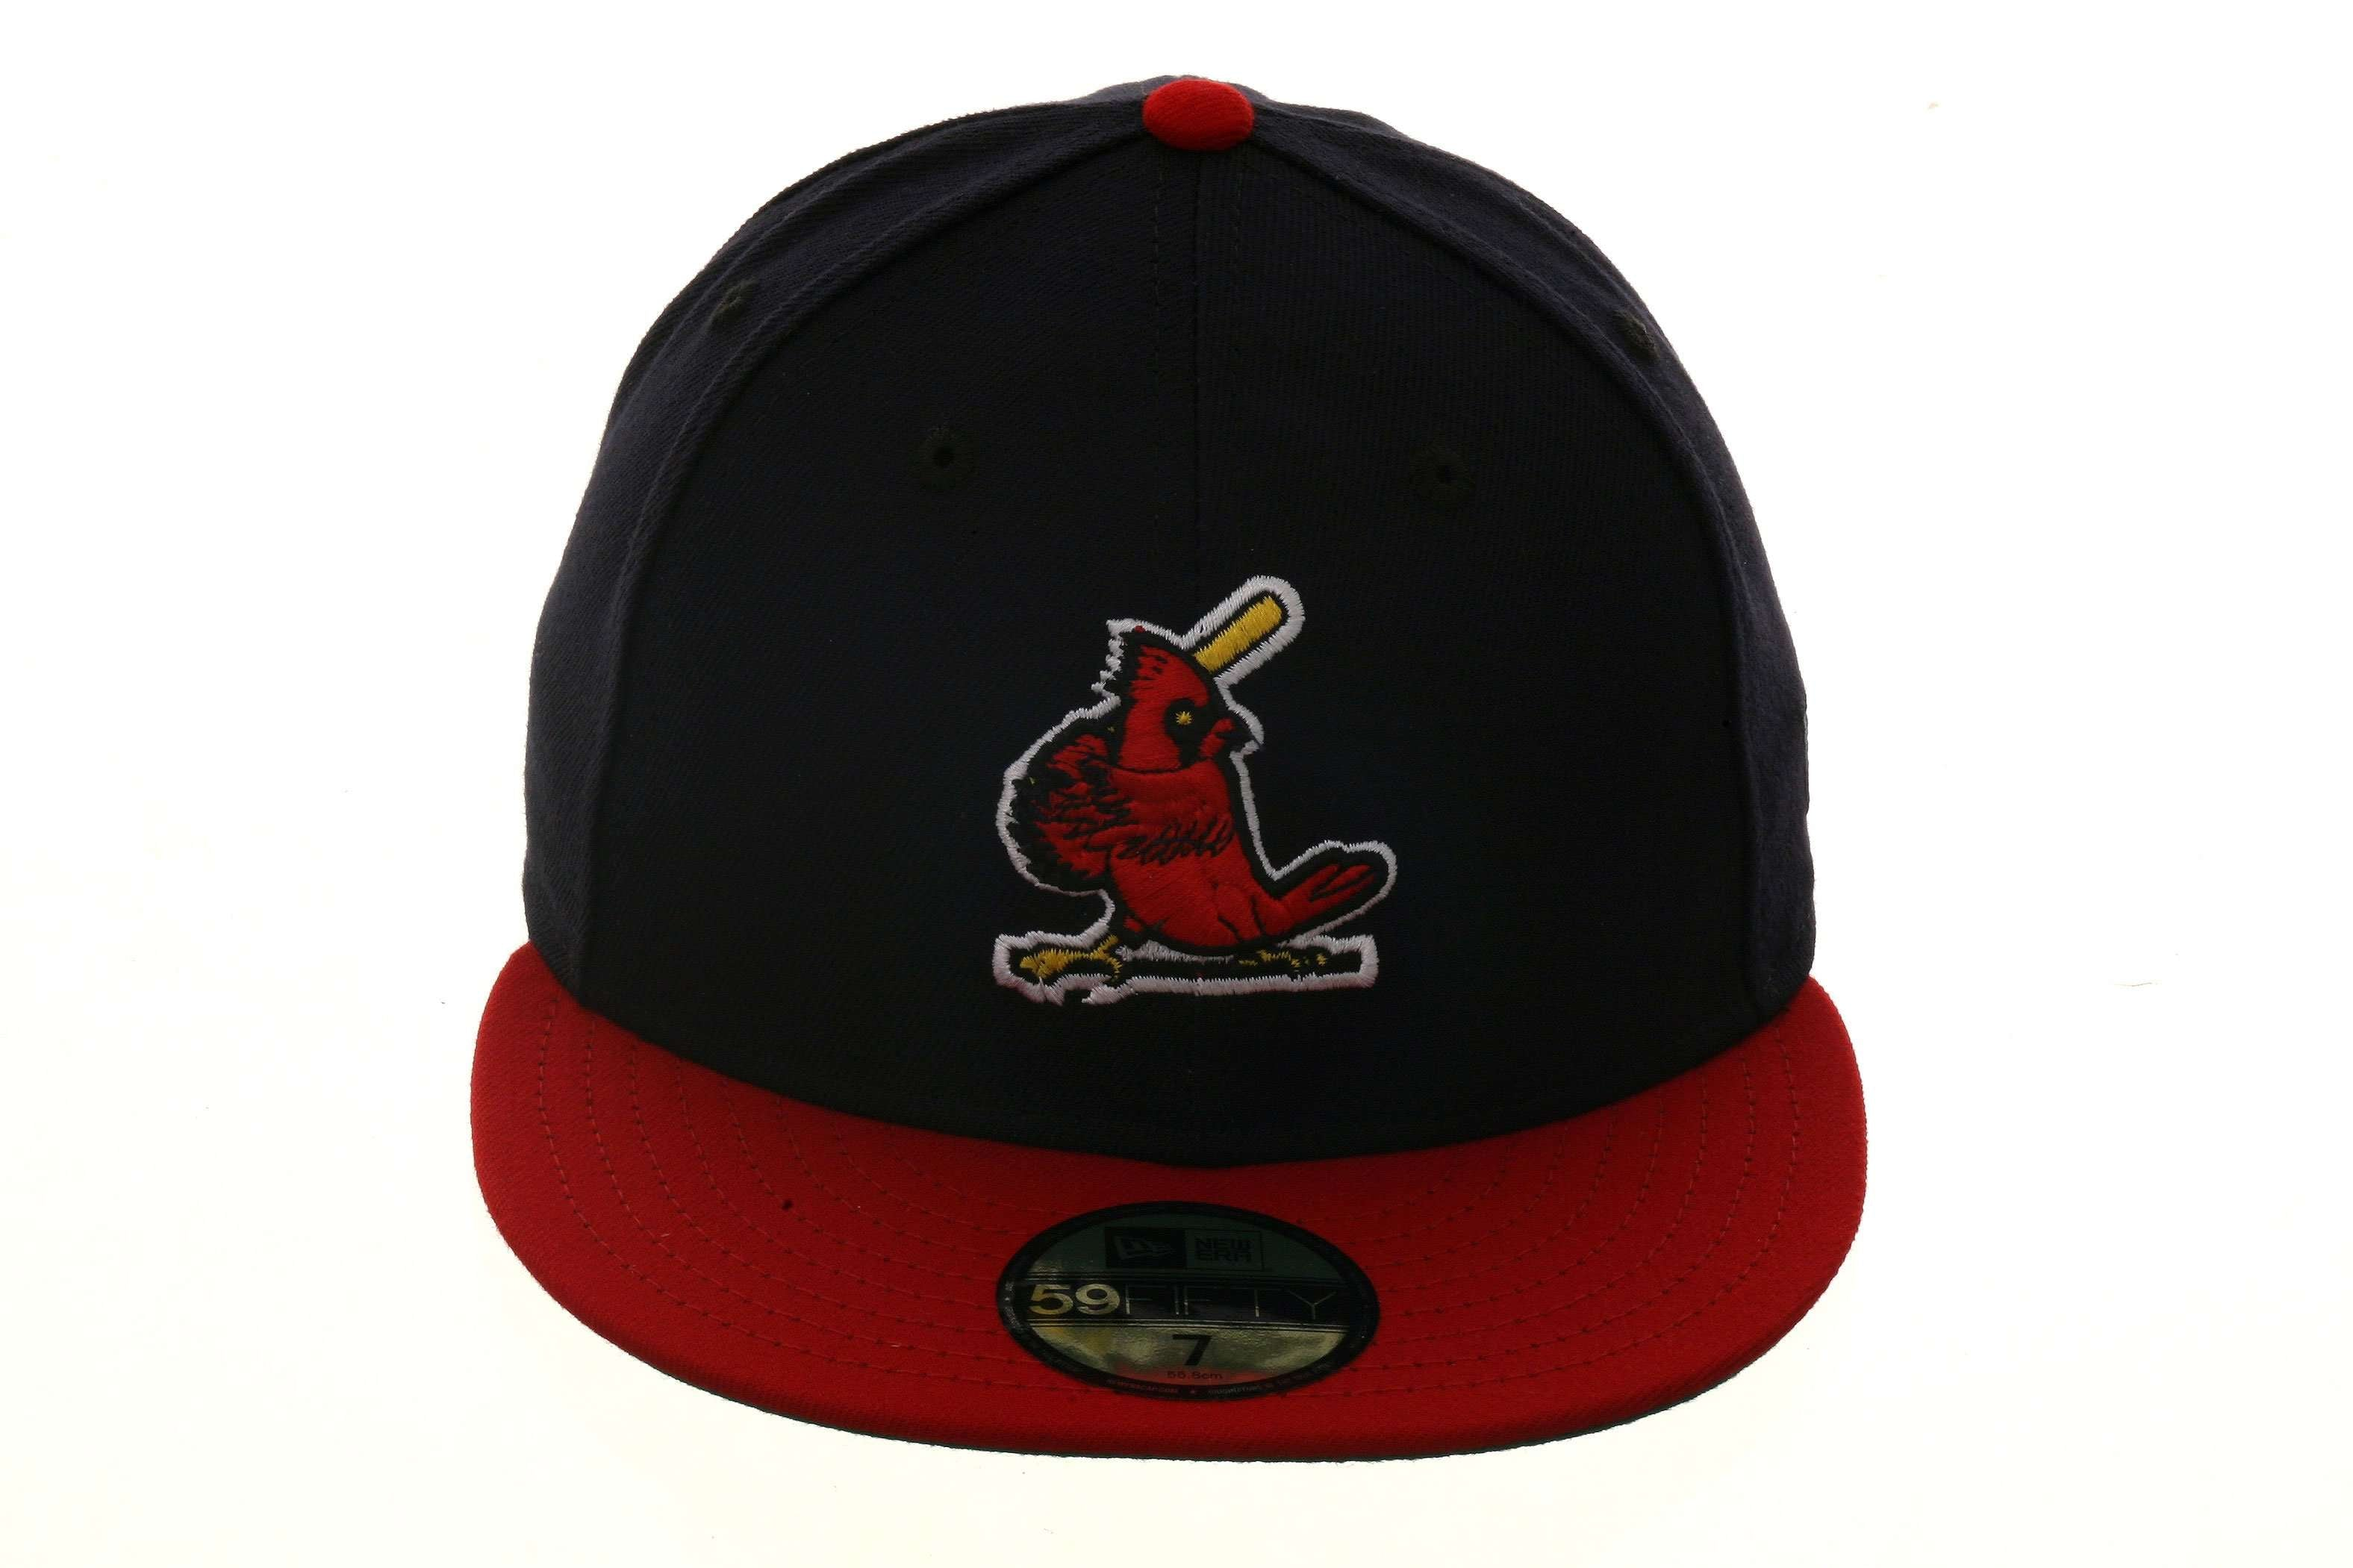 on sale 5d5f5 31909 St. Louis Cardinals 1967 Exclusive New Era 59Fifty Hat - 2T Navy, Red